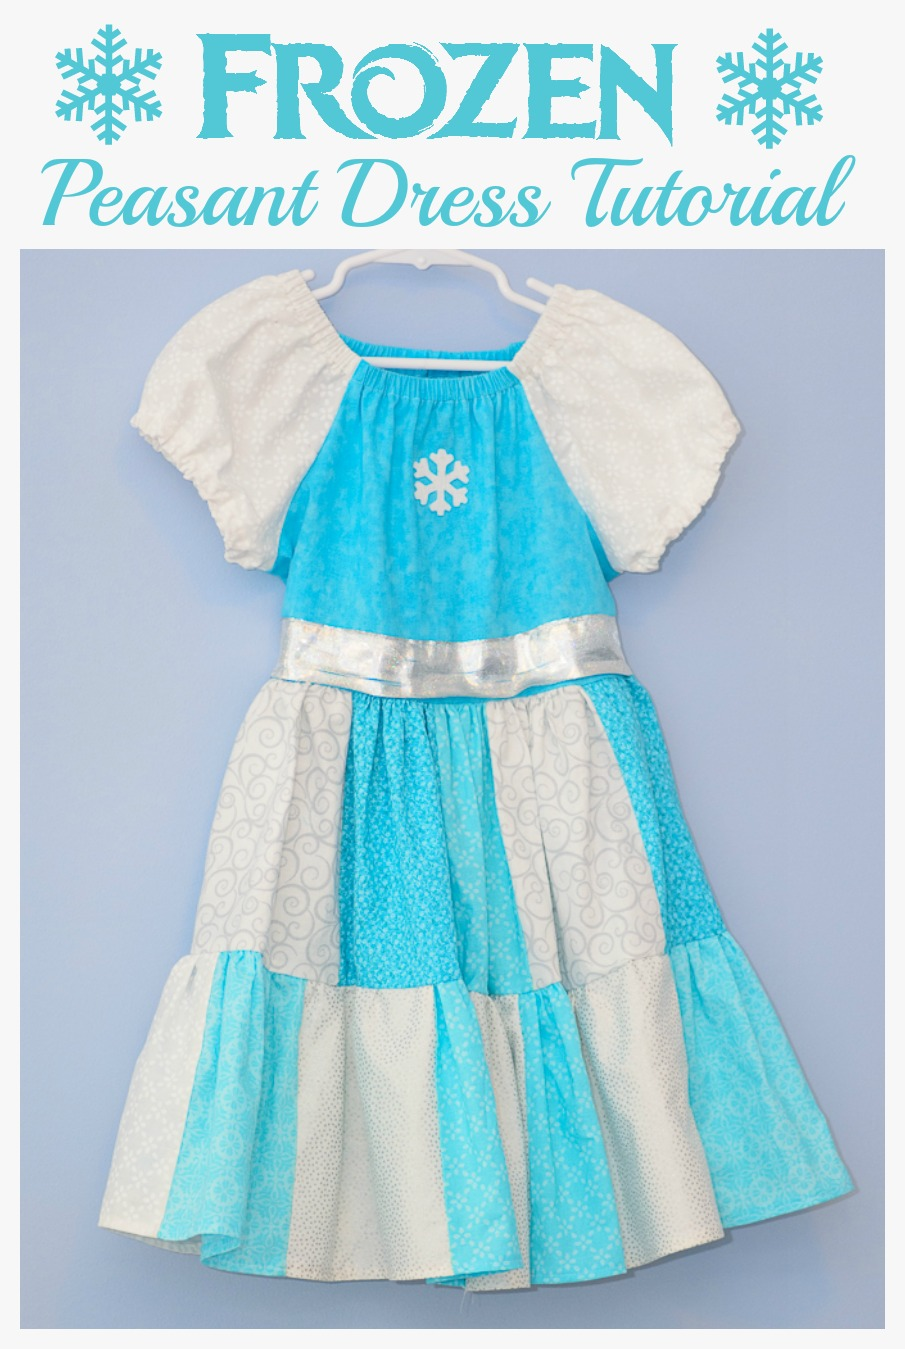 DIY Disney Frozen Peasant Dress Tutorial. Any Elsa fan is sure to love this Frozen inspired dress. No pattern to download. Great free sewing project for beginners.